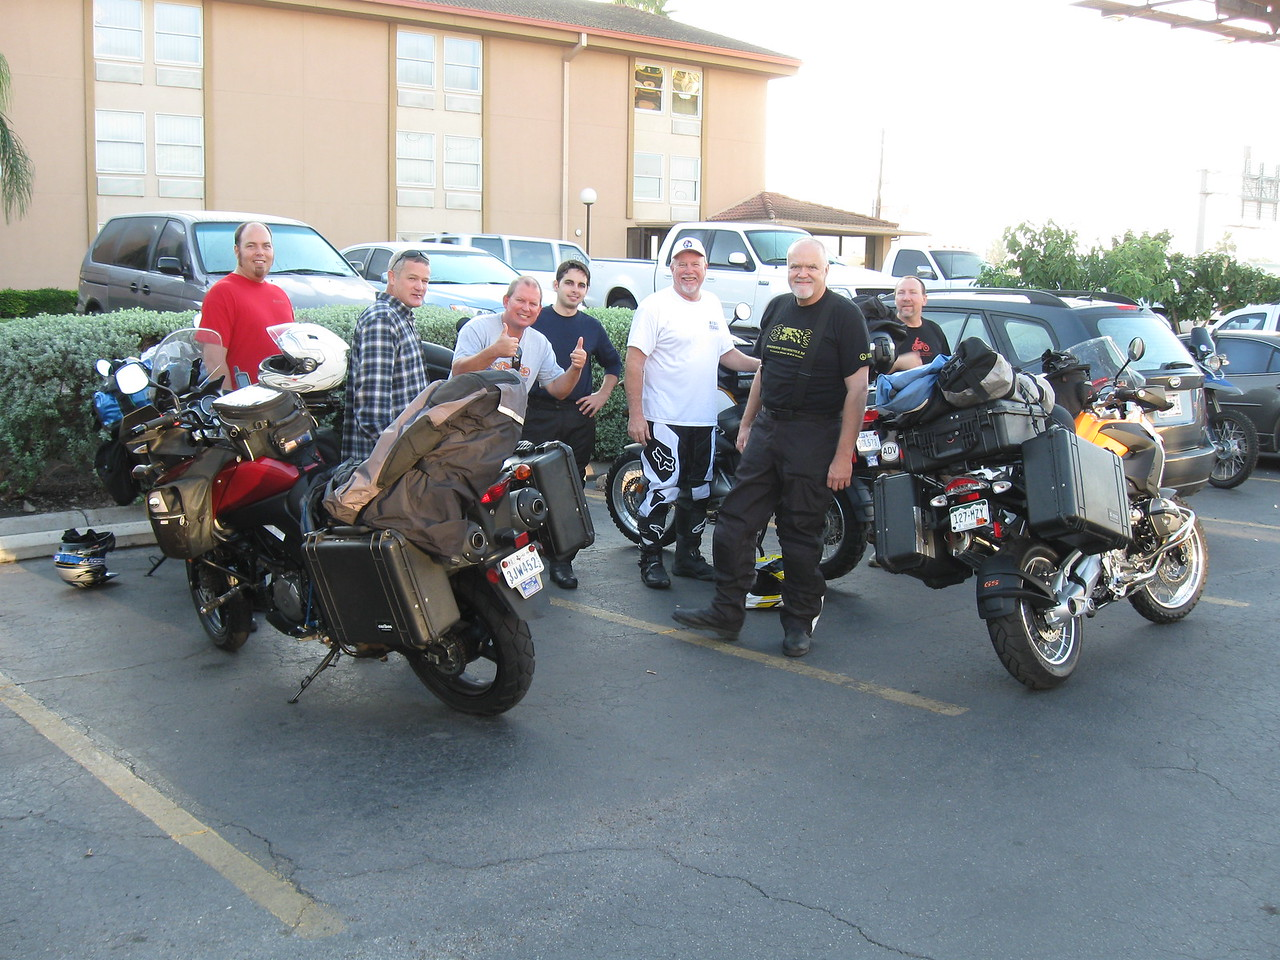 Ready to ride.  A group of us met up in McAllen so we could ride to Galeana together.